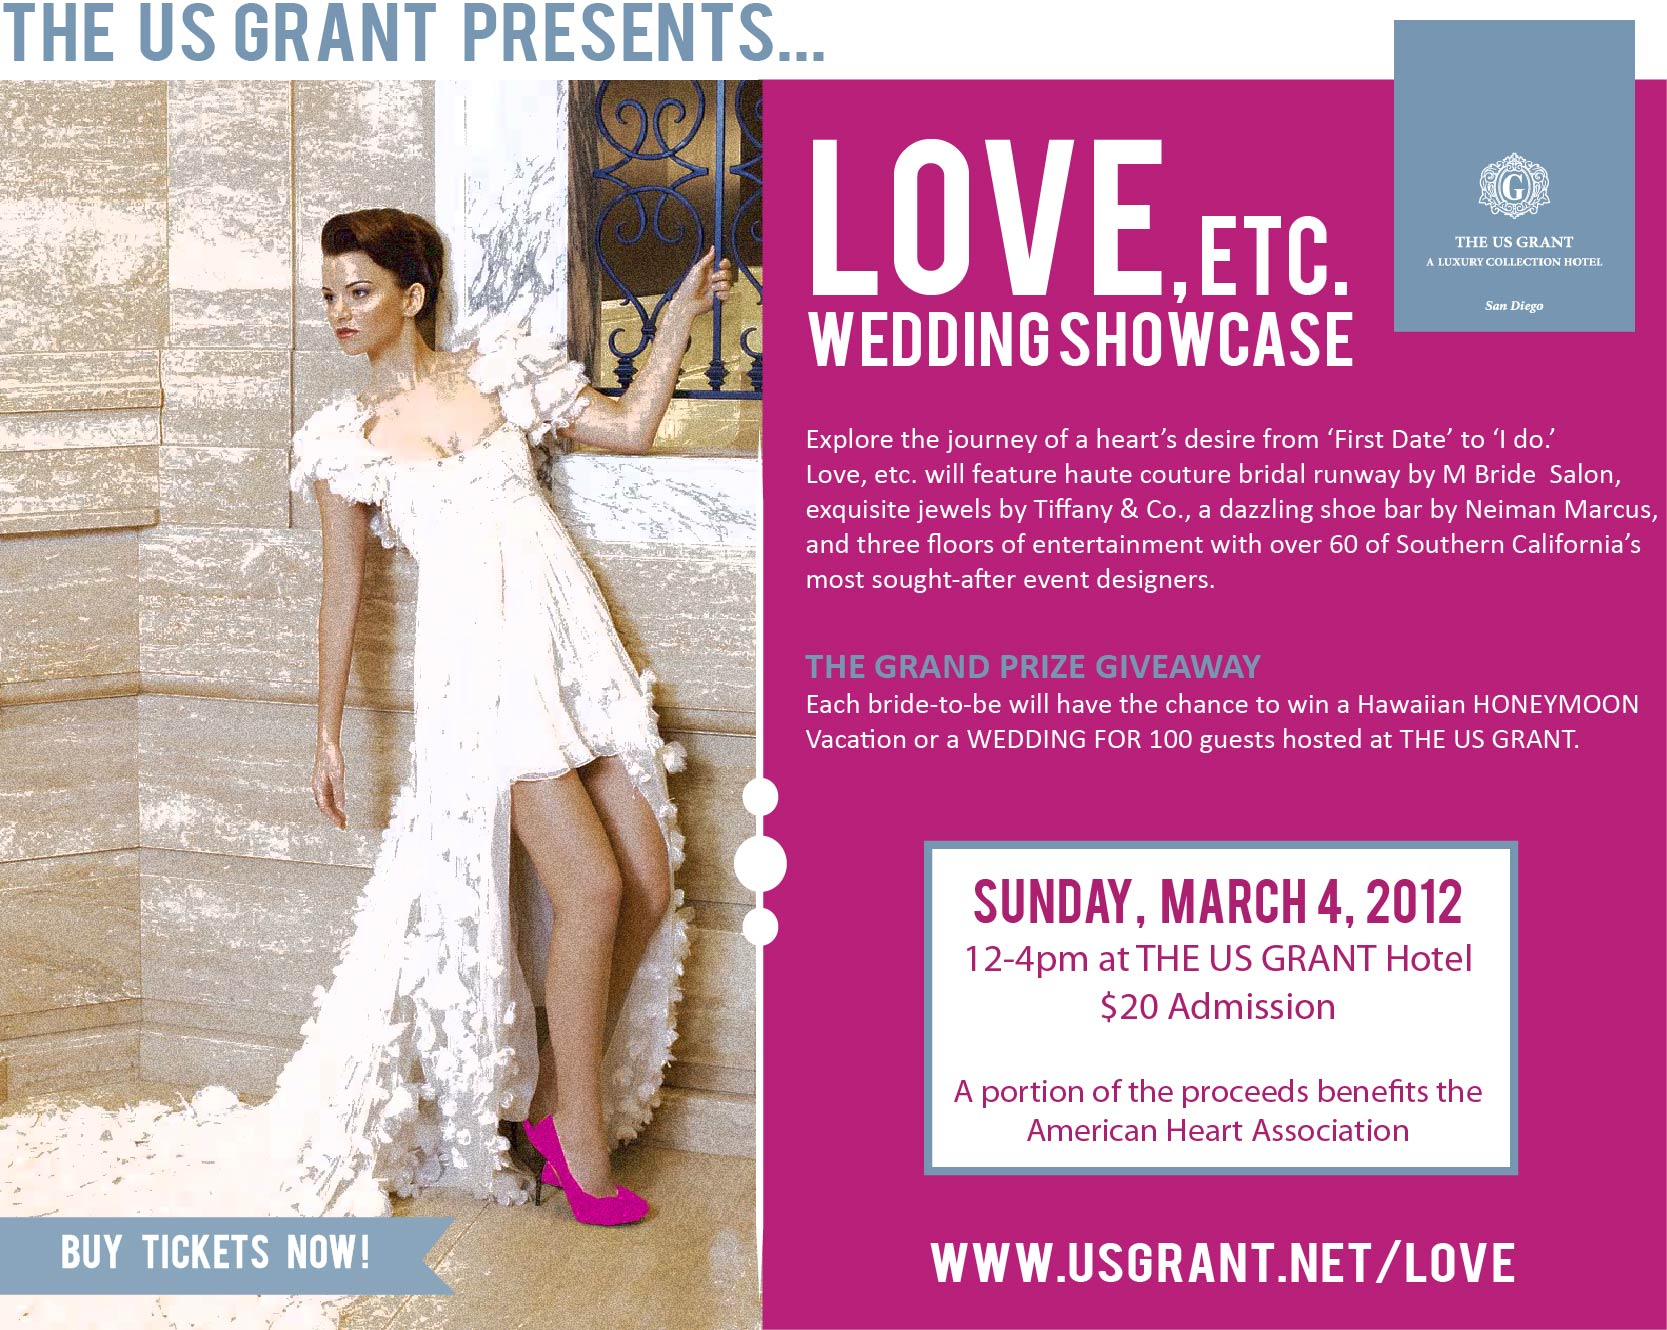 Your Invitation to Love Etc